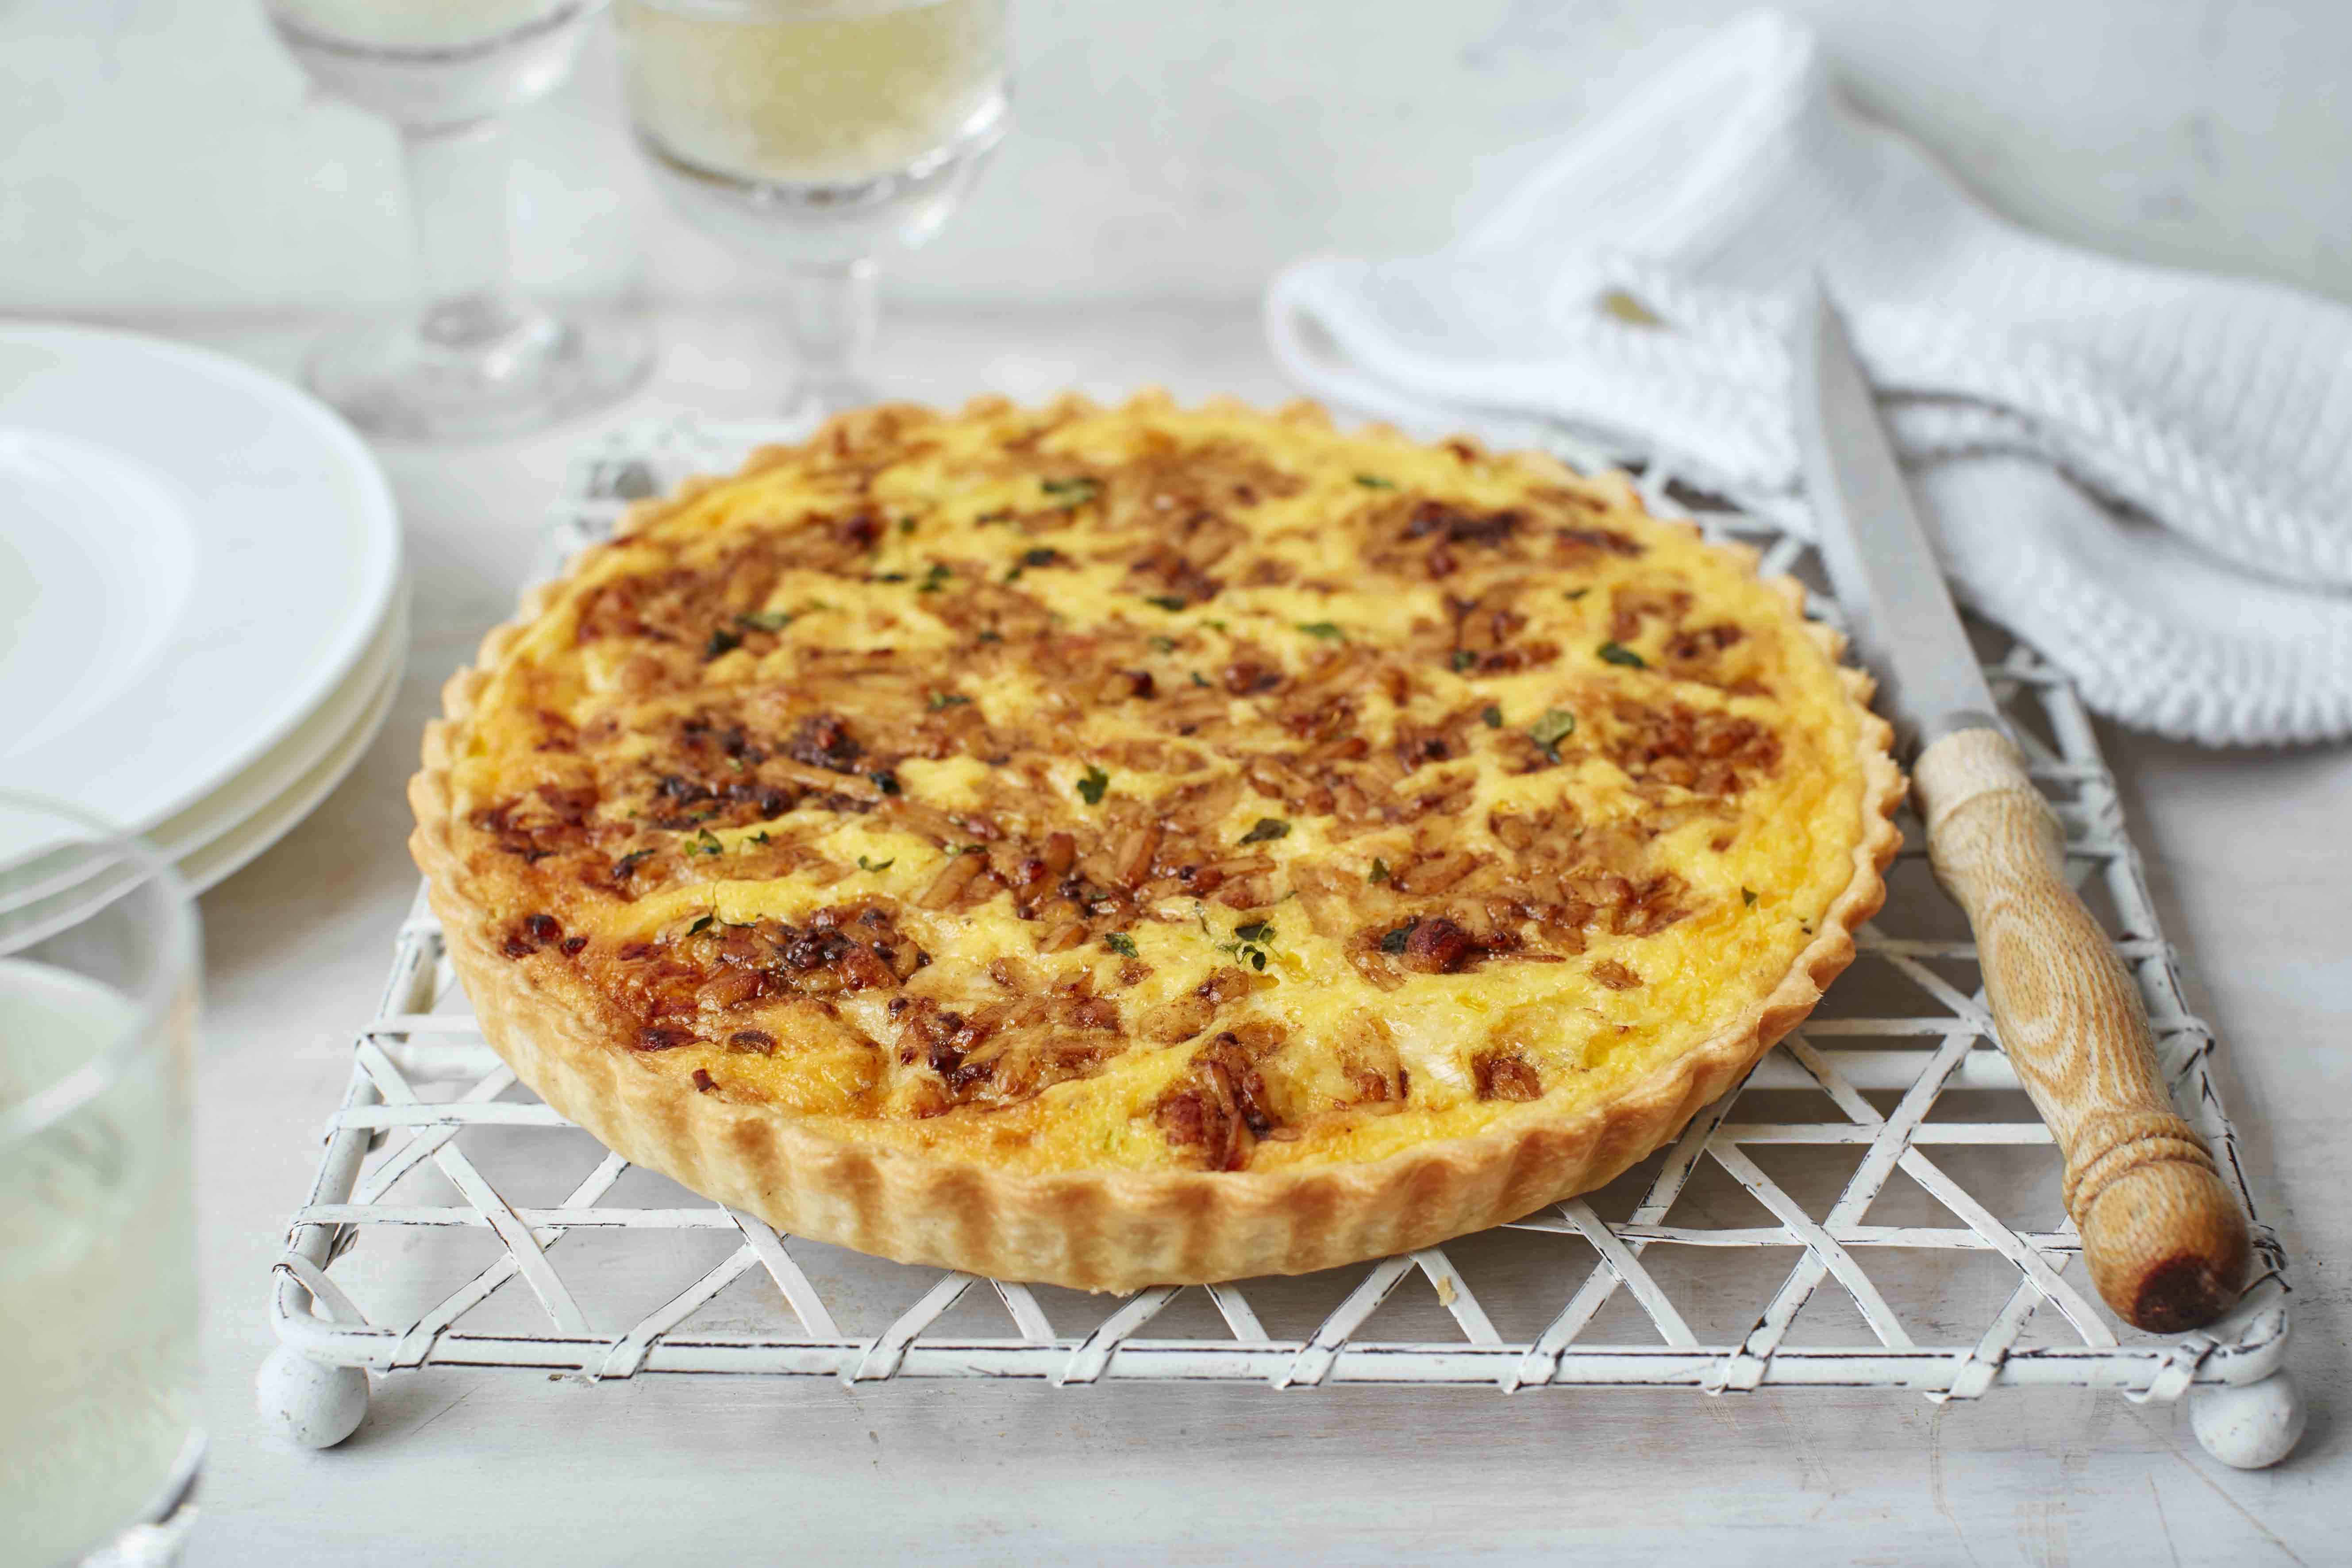 Inspired by classic Welsh rarebit, this gloriously cheesy tart is ...